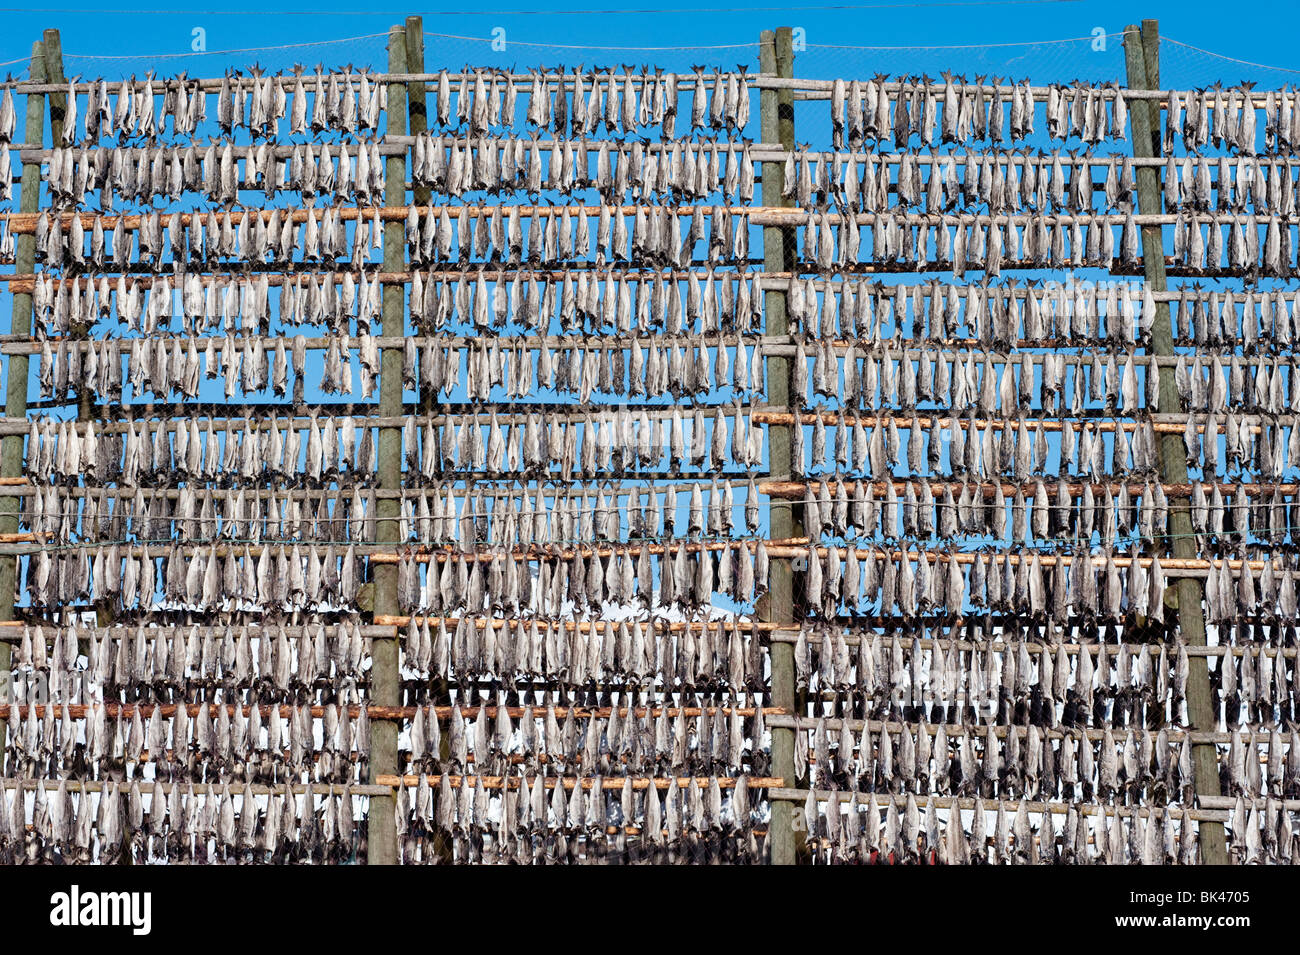 Drying cod to produce traditional stockfish on outdoor A frame racks in Svolvaer in Lofoten Islands in Norway - Stock Image